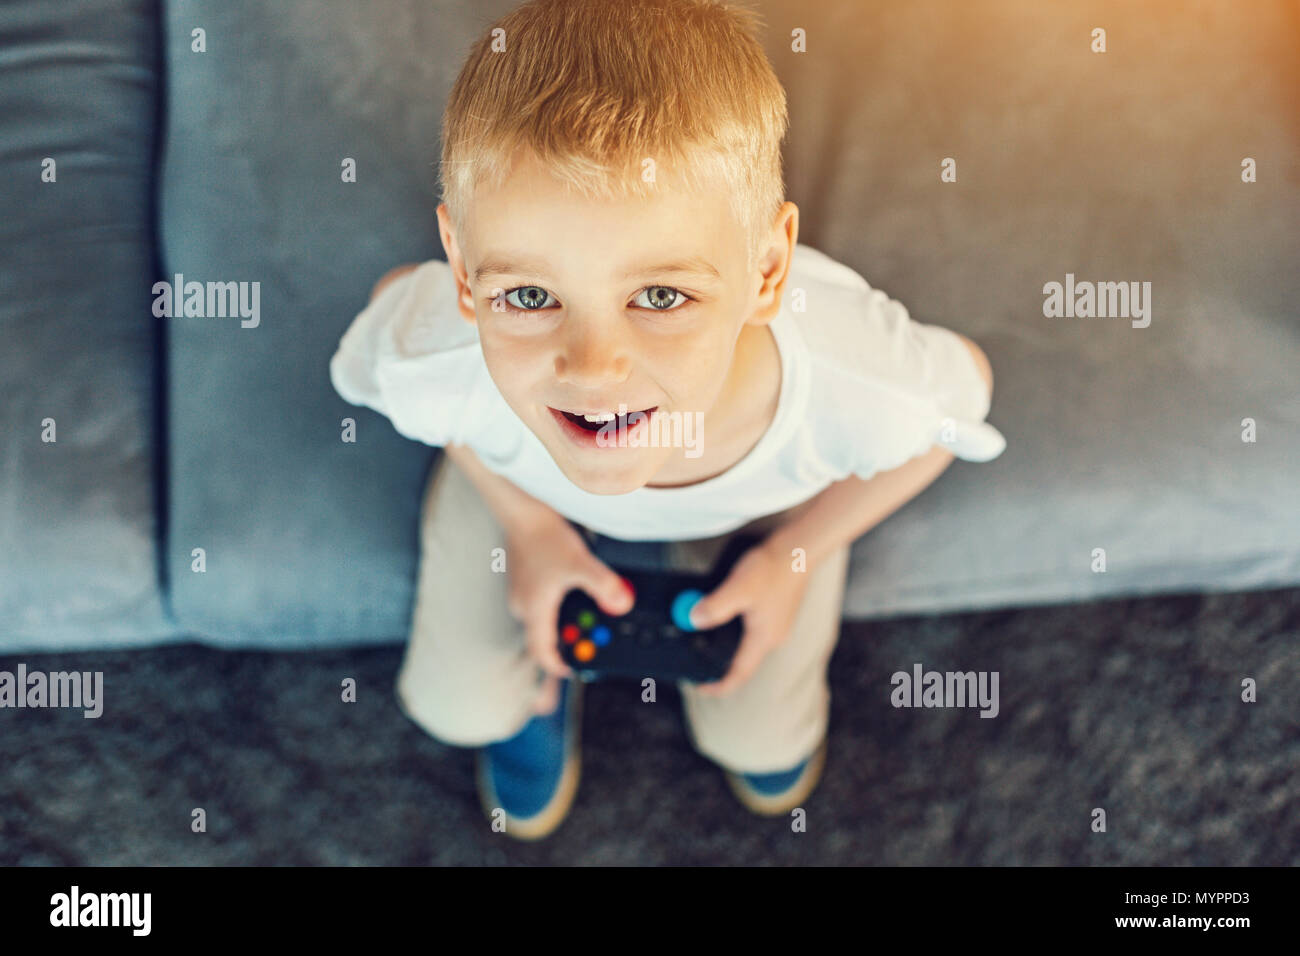 Playful boy sitting with a games console - Stock Image